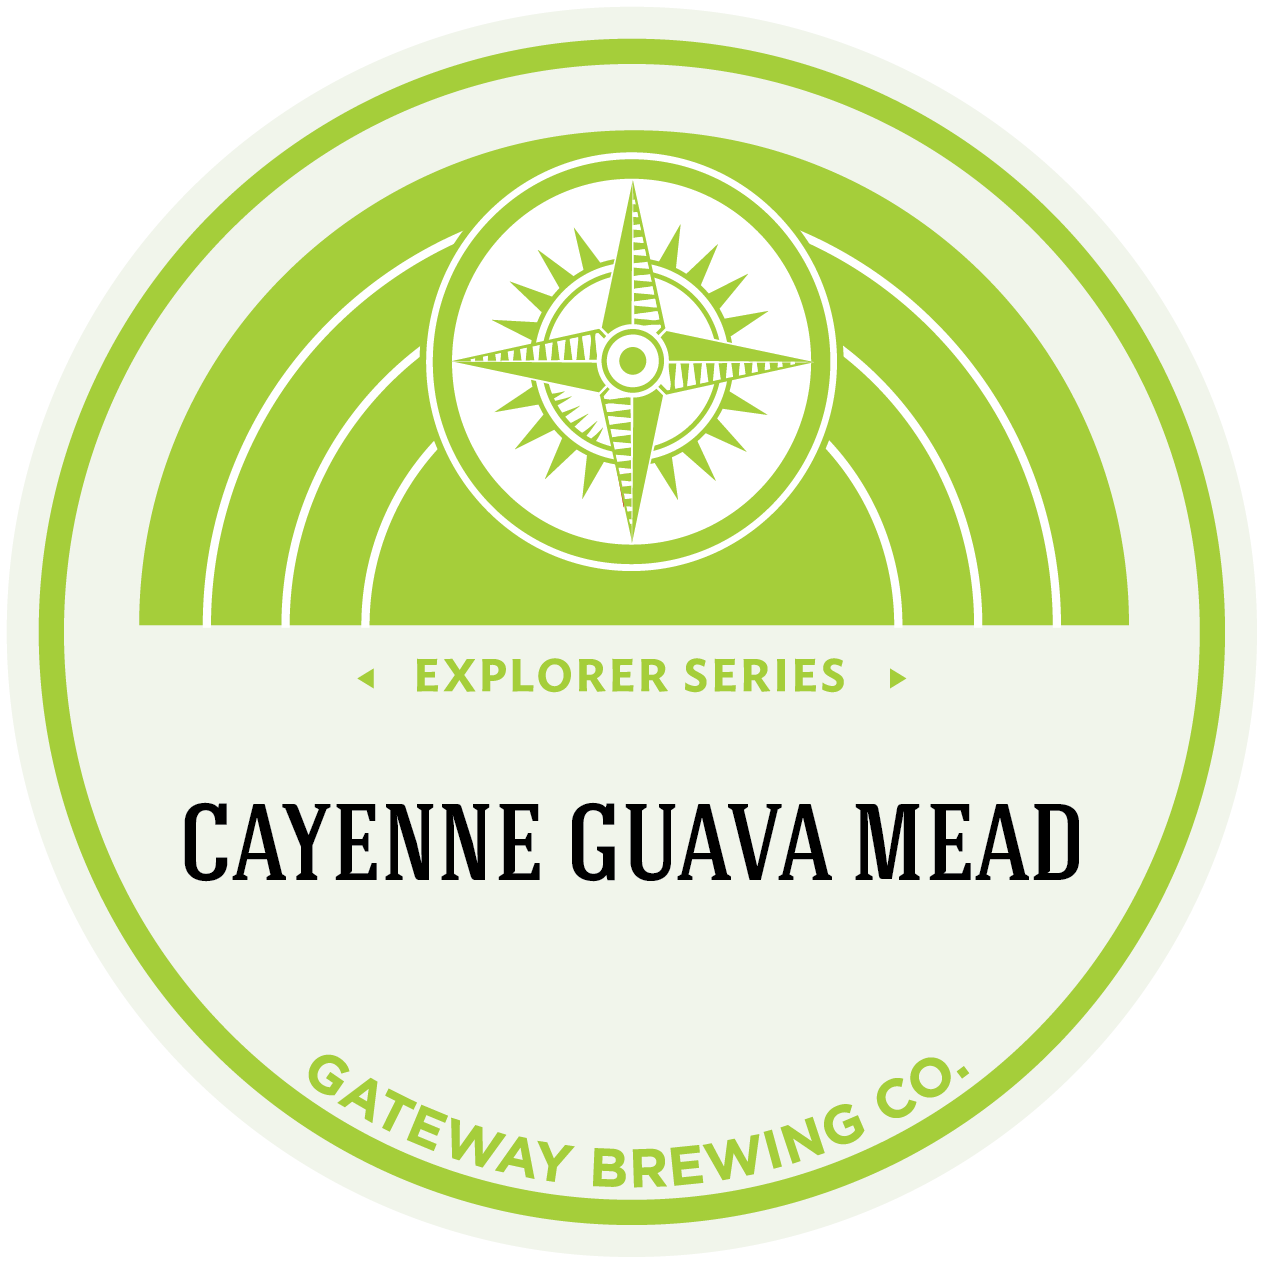 Cayenne Guava Mead